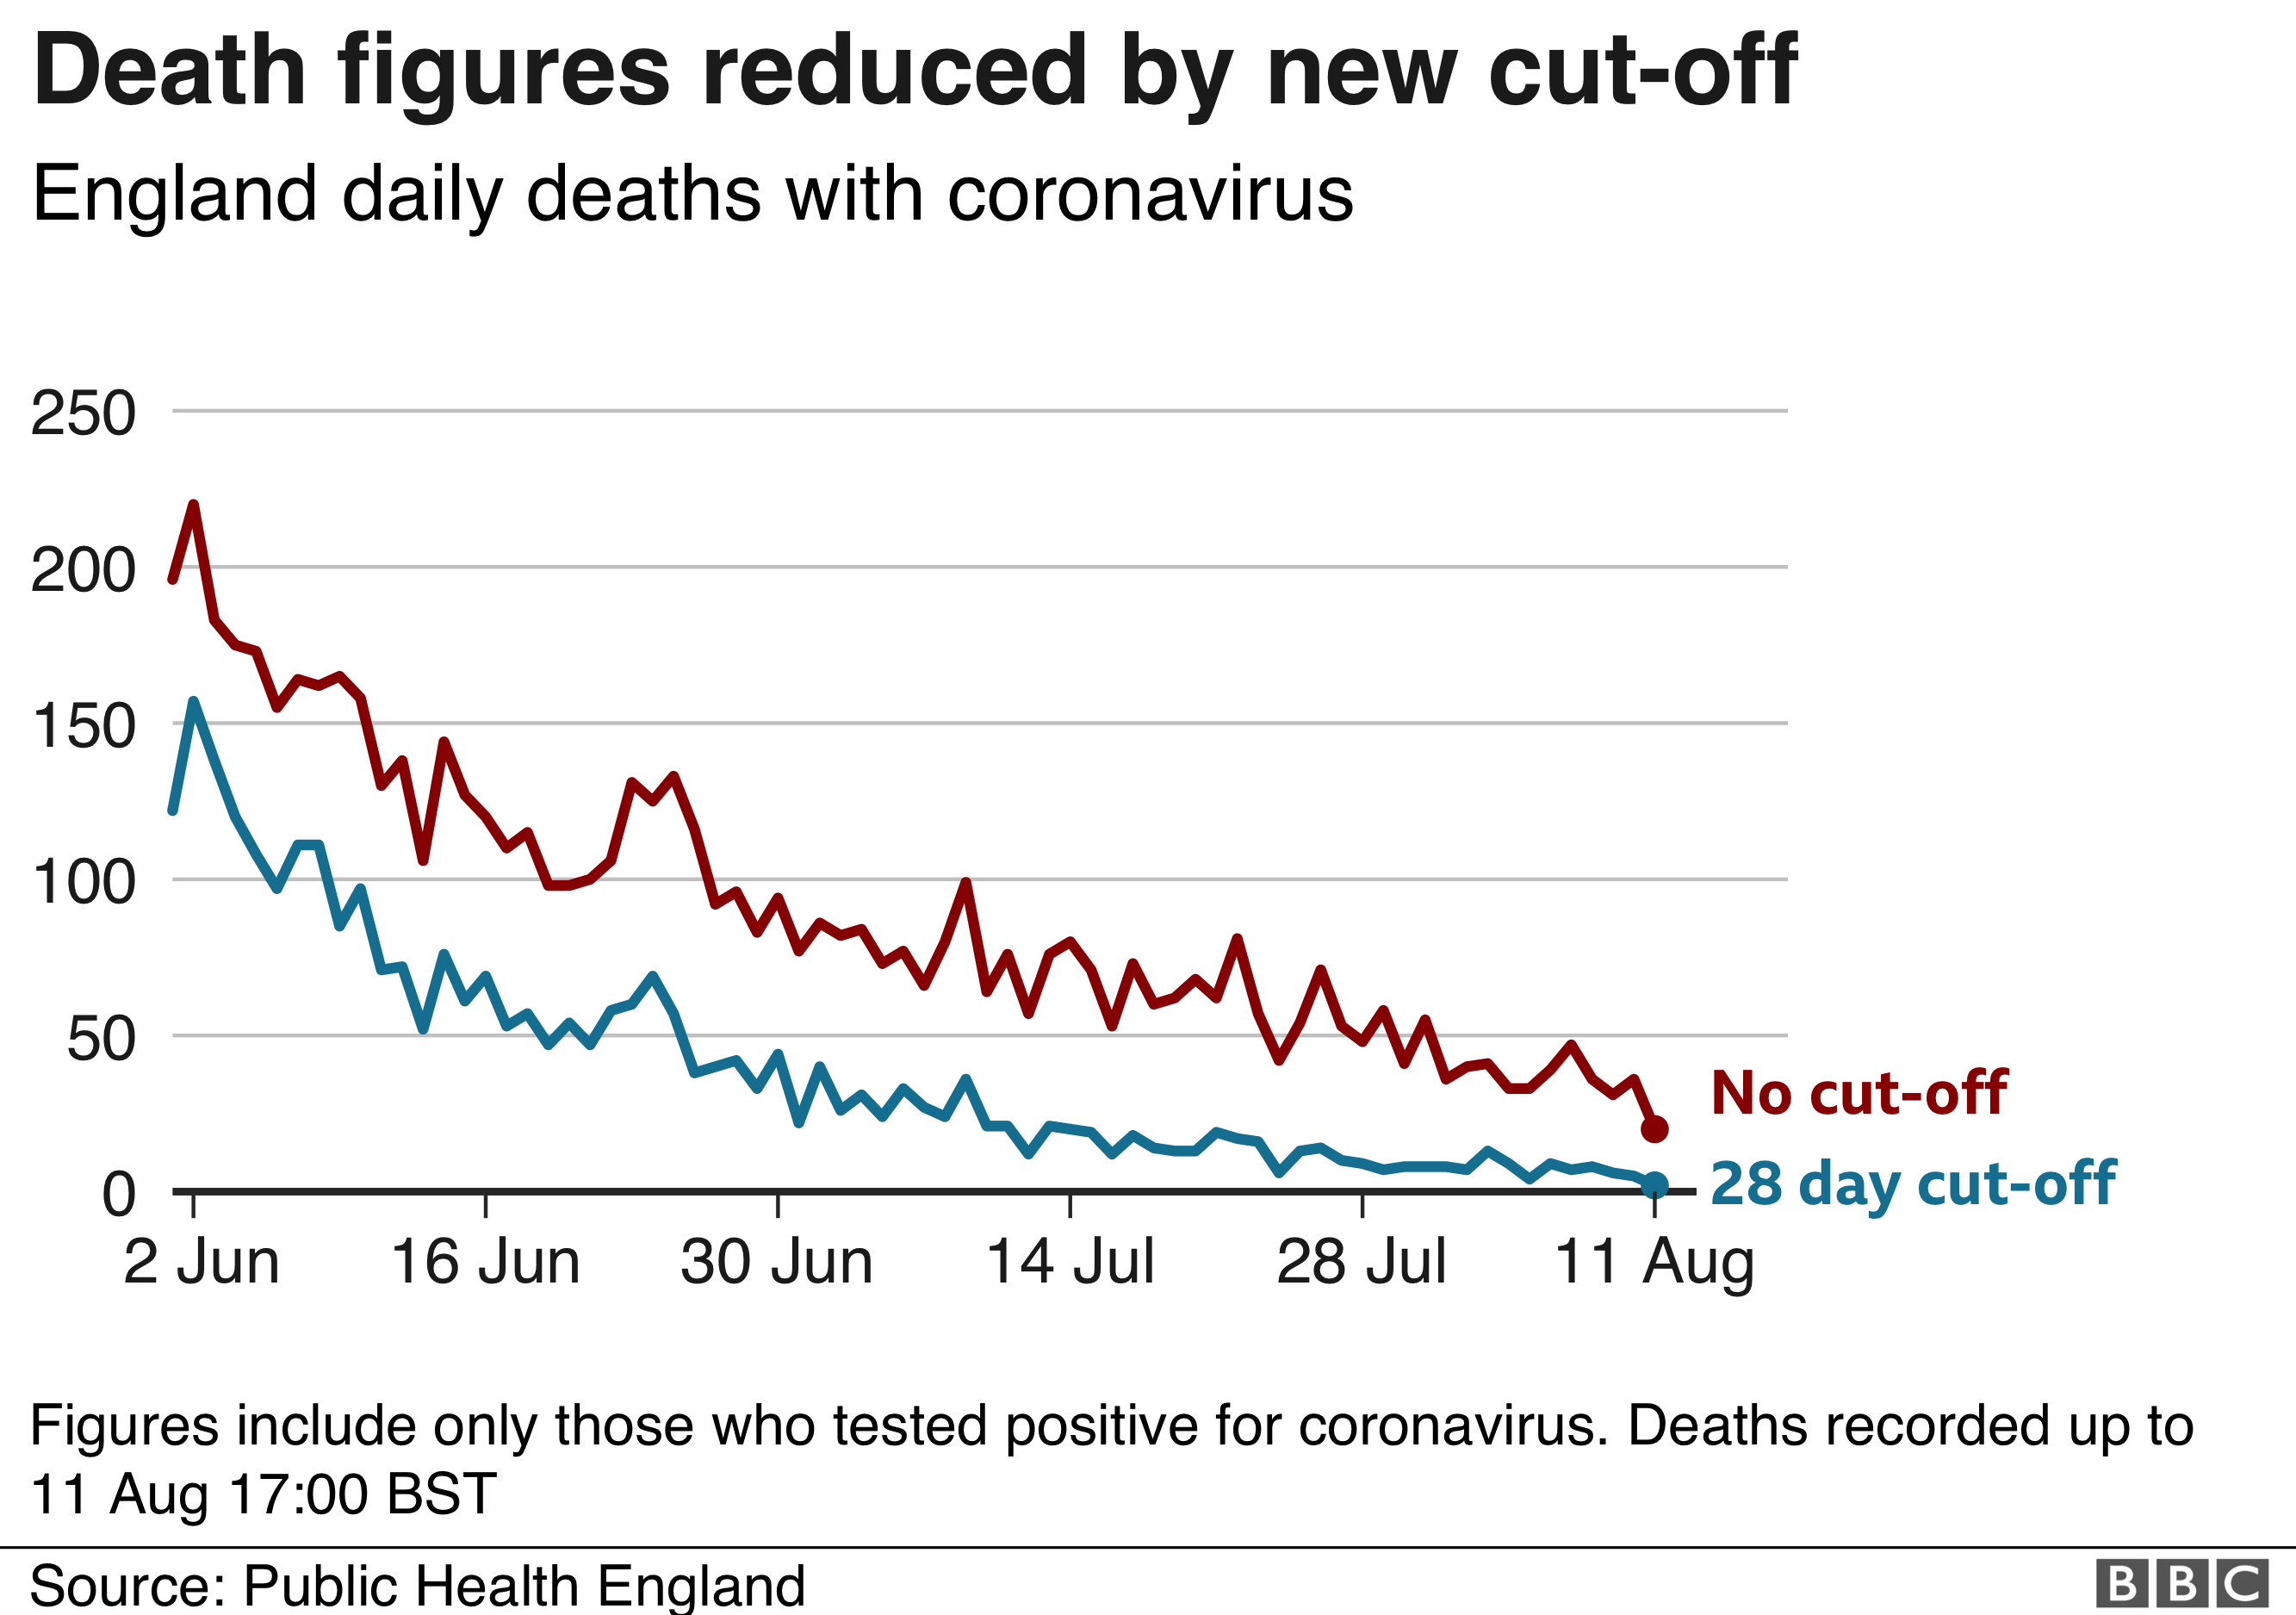 England death figures reduced by new cut-off of 28 days